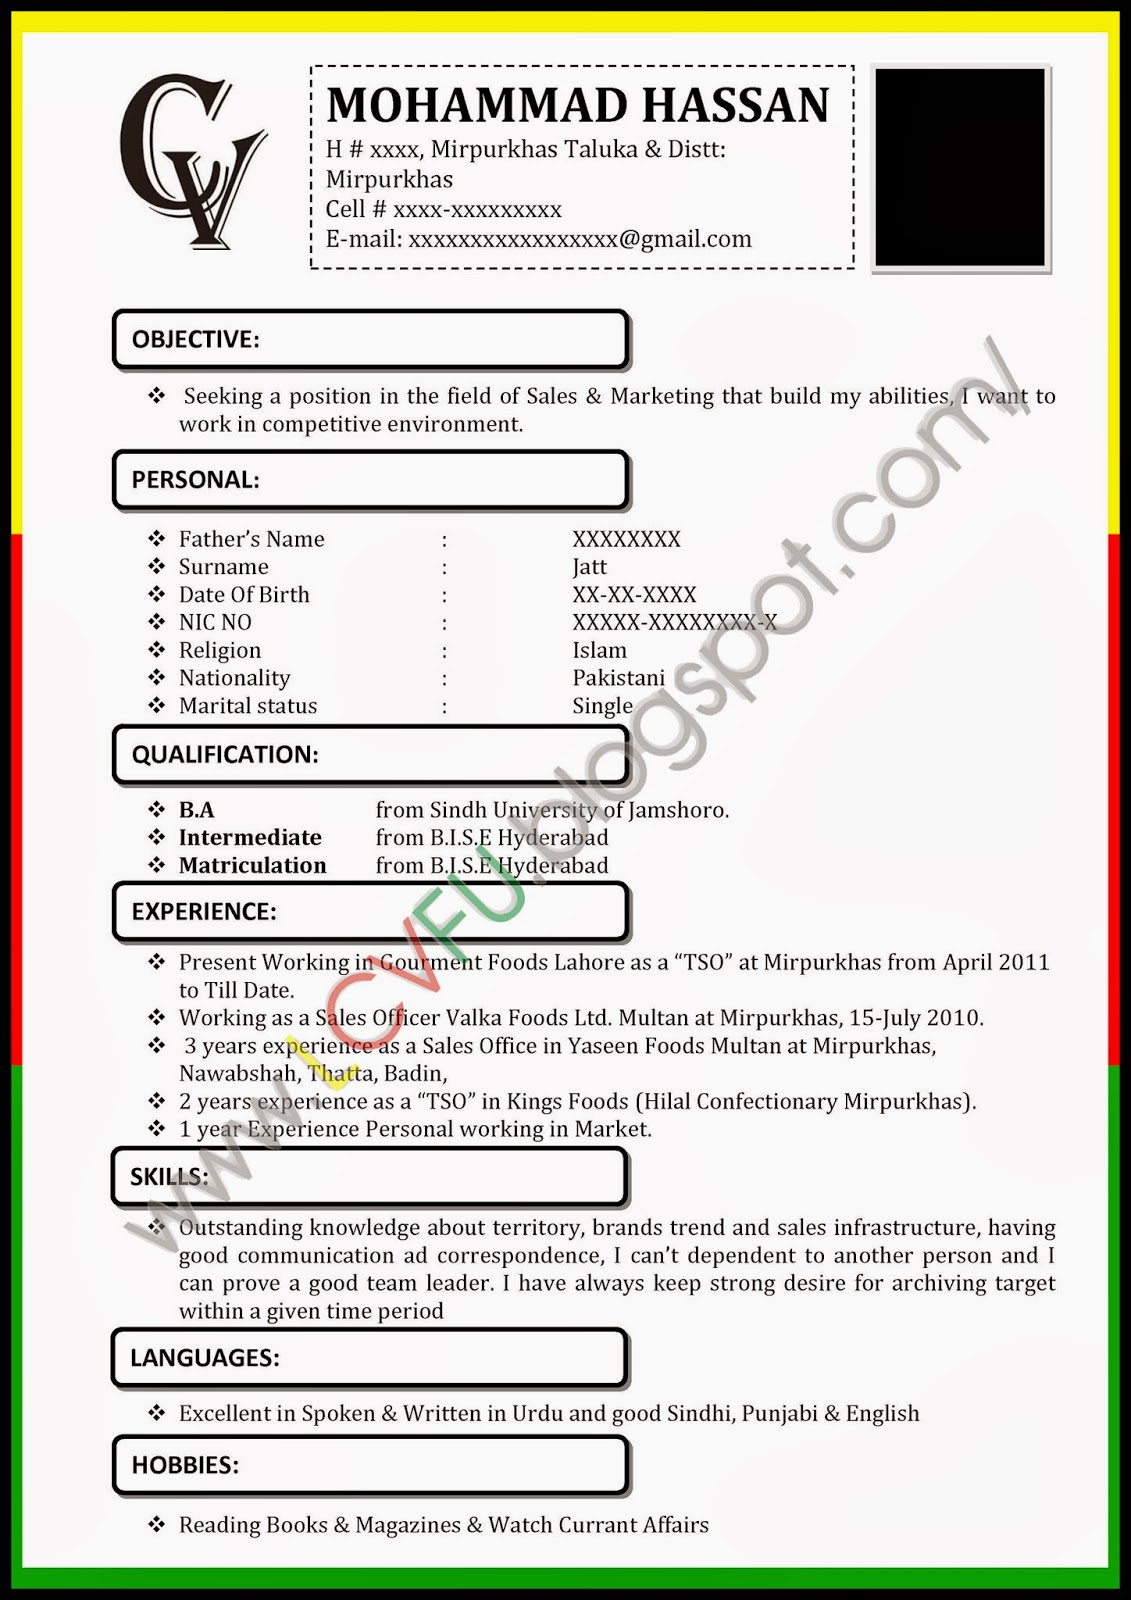 latest cv formats updates   ms word cv format  latest cv format 2014  new cv formats  new design